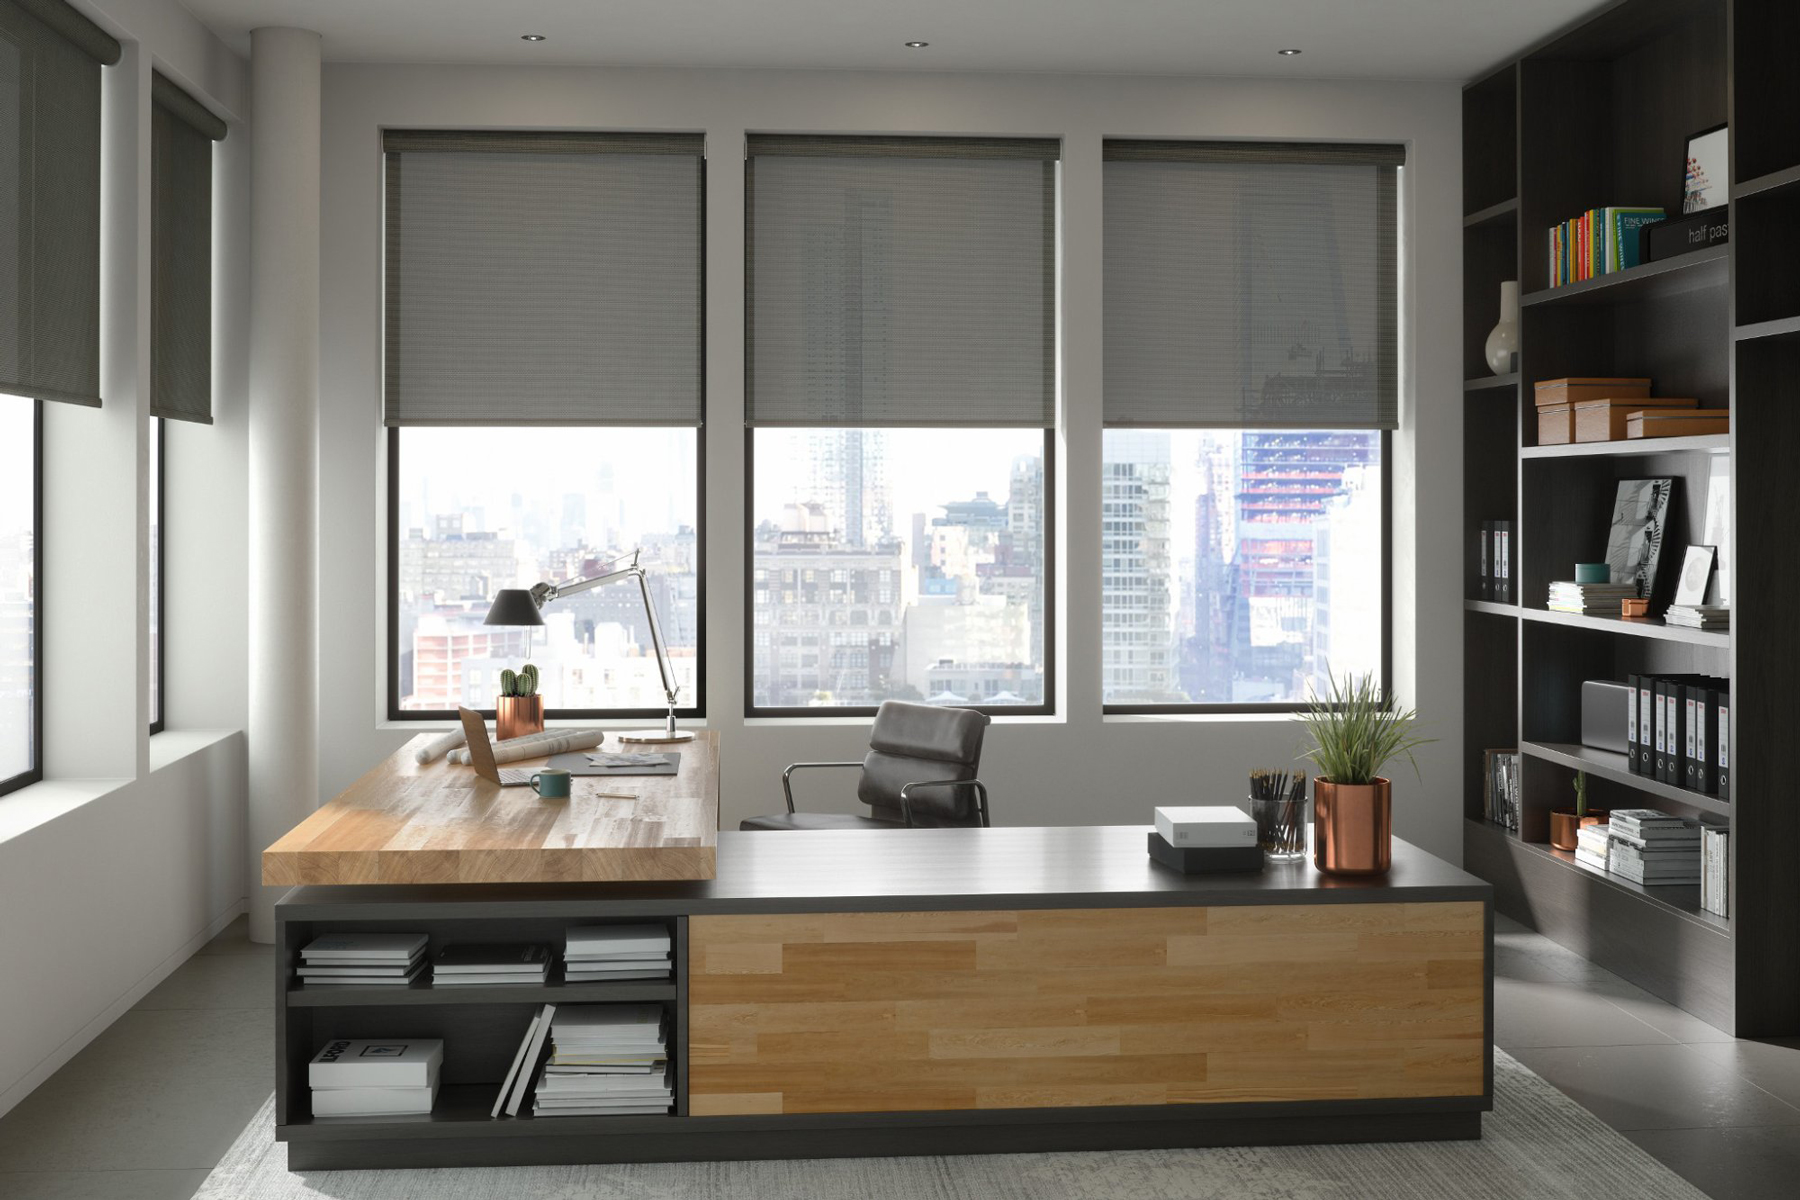 interior tinting commercial residential shutters blinds window treatments austin img